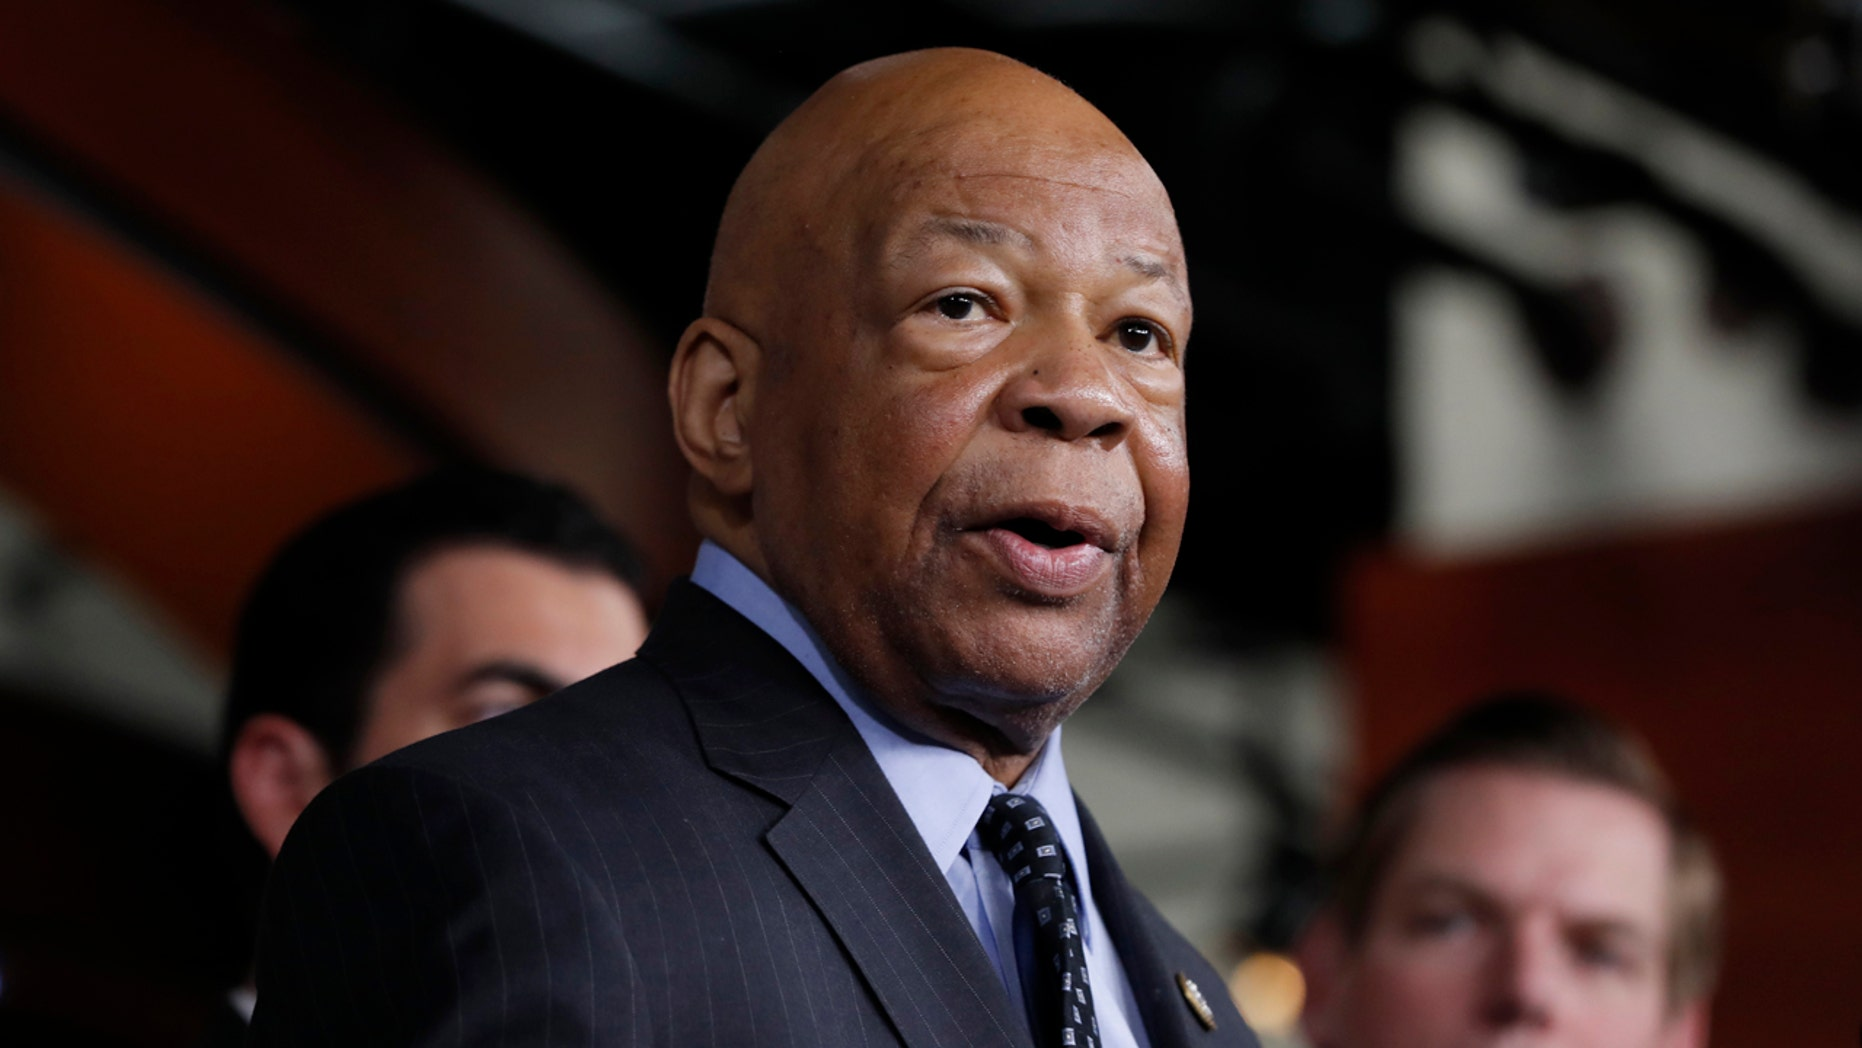 Rep. Elijah Cummings, D-Ga., sent a letter to Attorney General Jeff Sessions in April accusing the Justice Department of using political bias when hiring immigration judges.